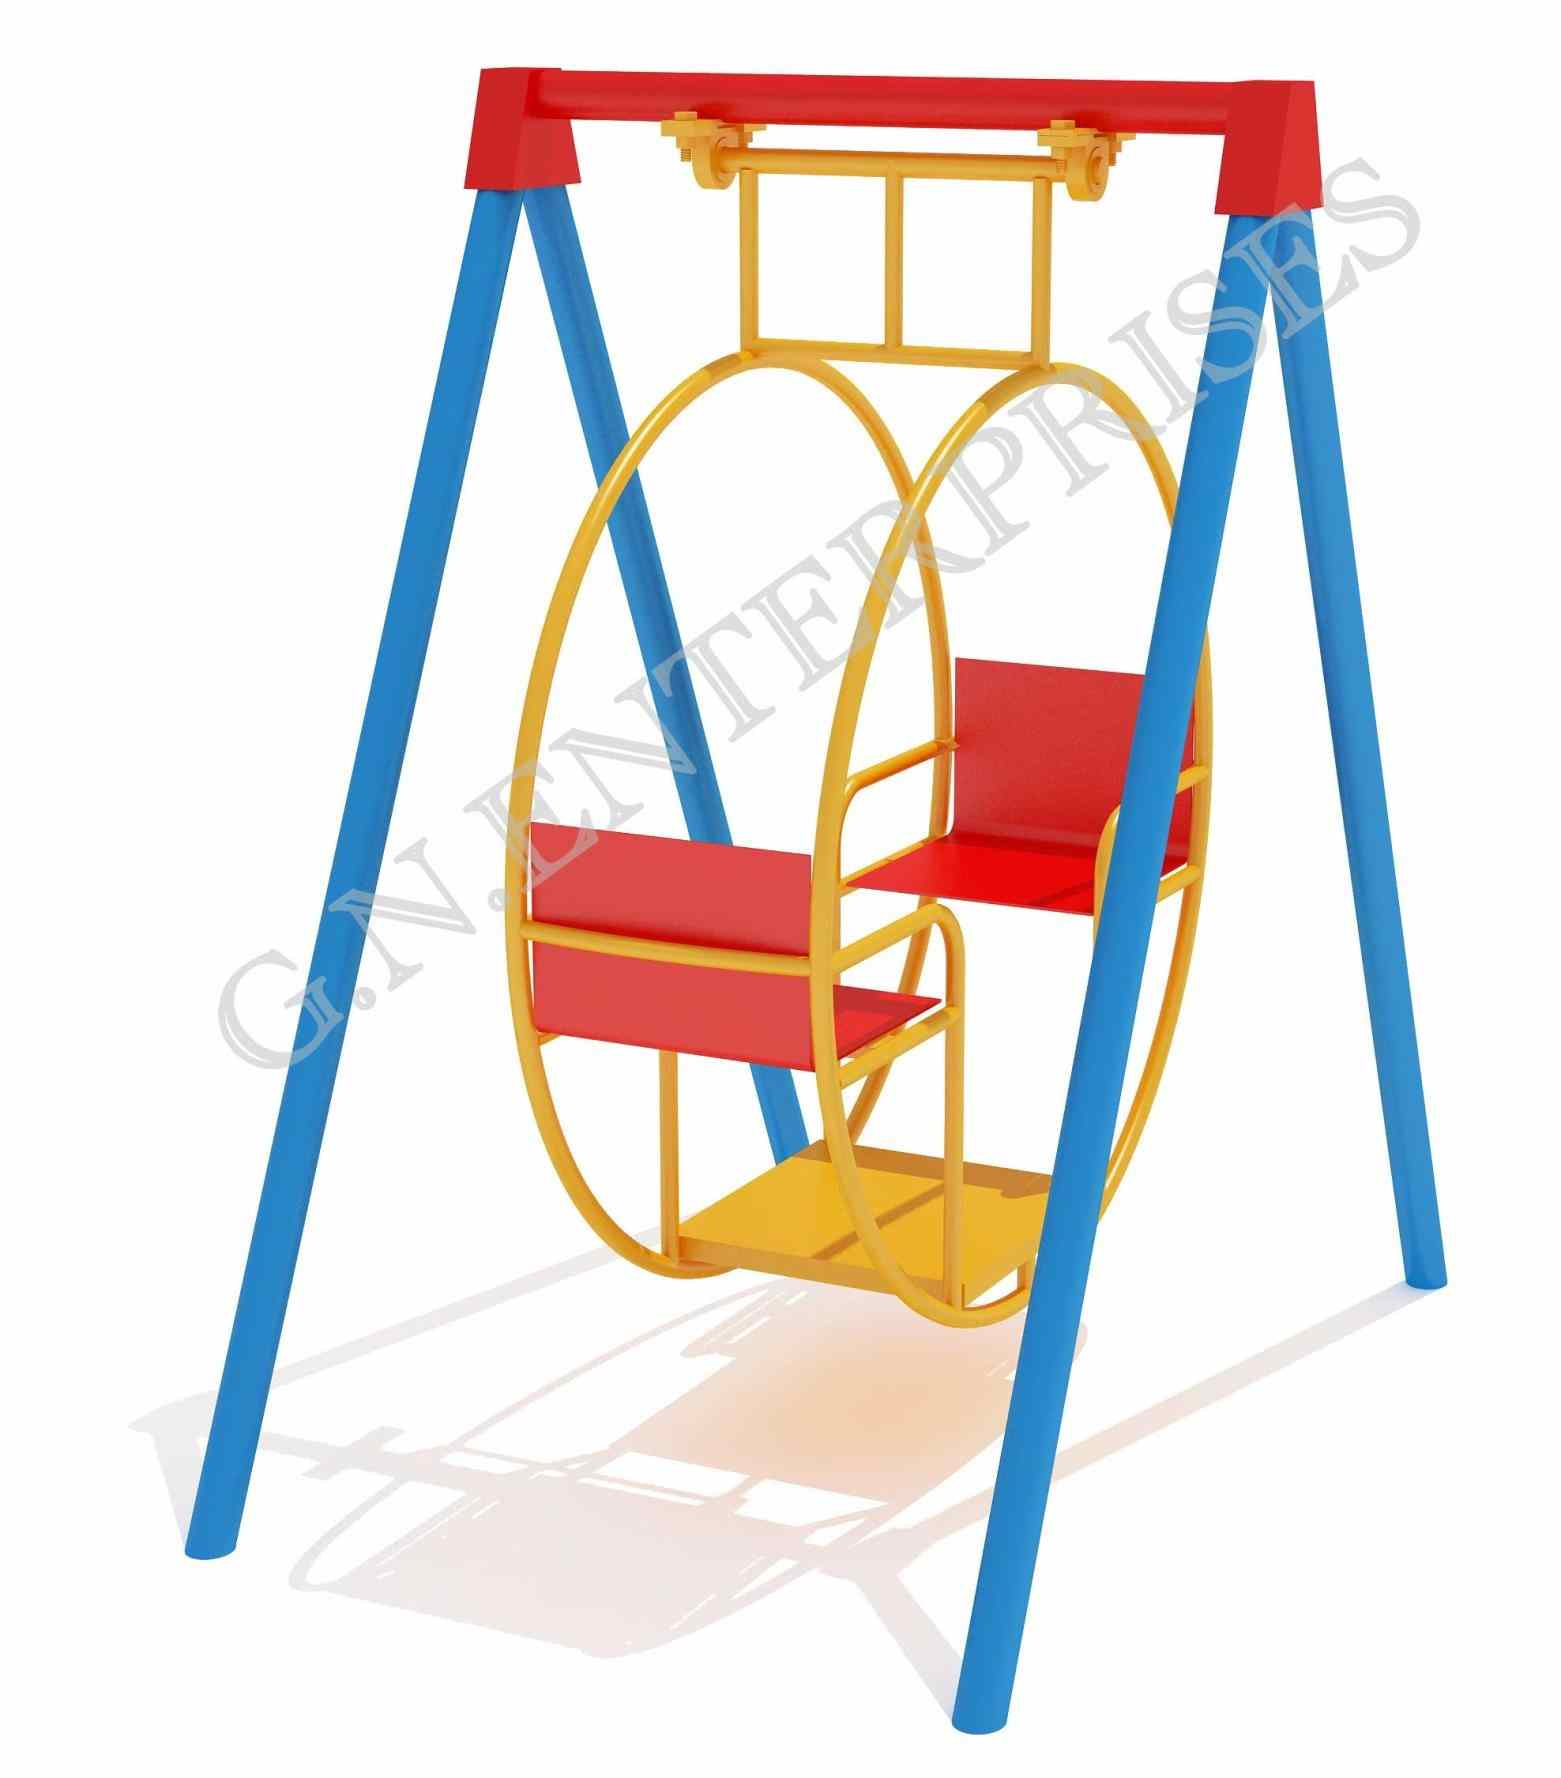 Carousel clipart playground. The images collection of